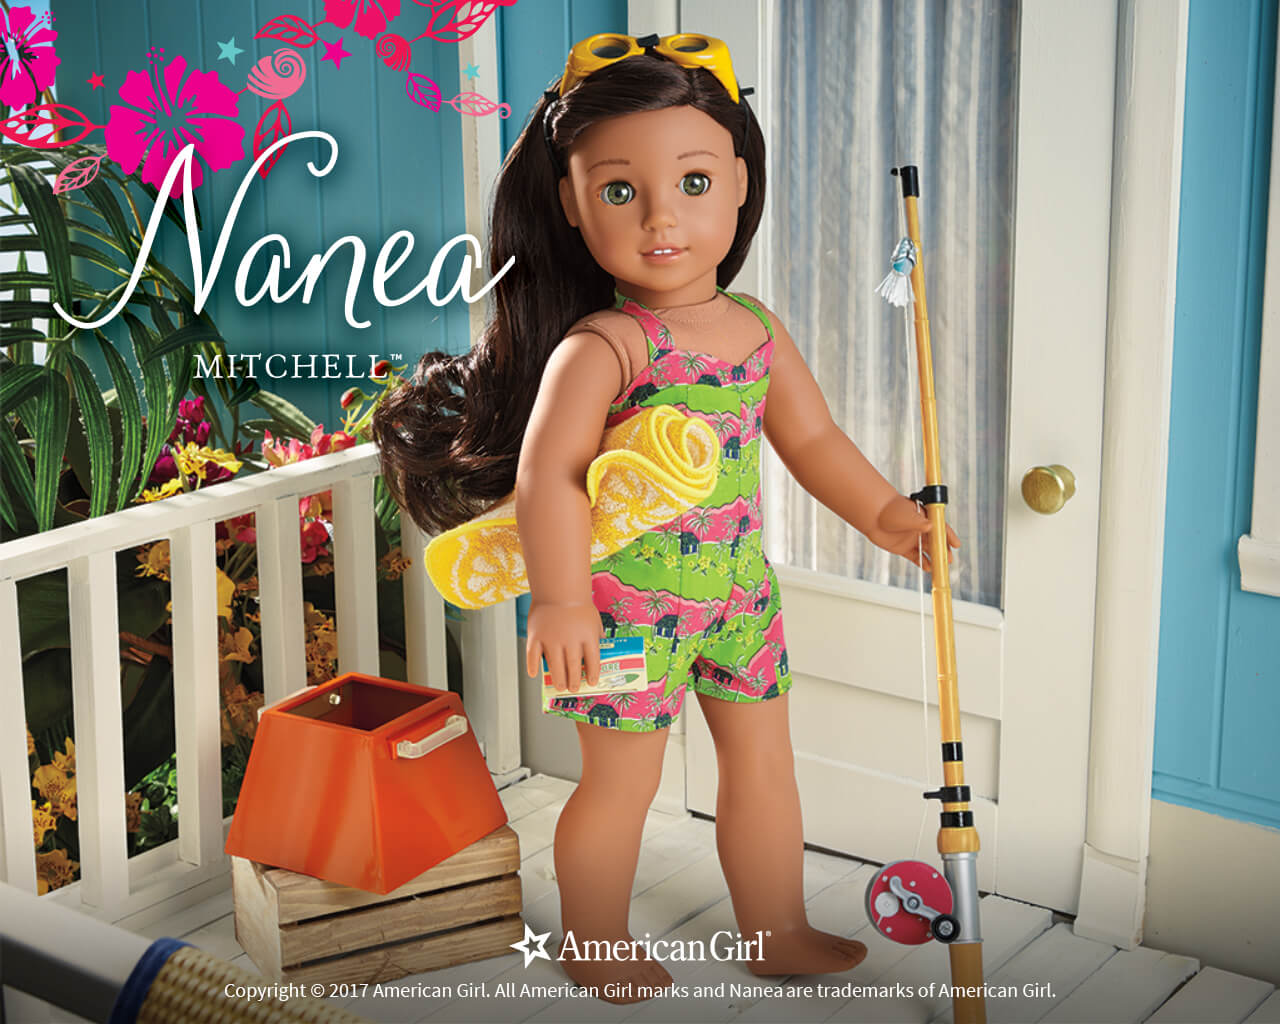 Nanea Mitchell 1941 BeForever Play at American Girl 1280x1024